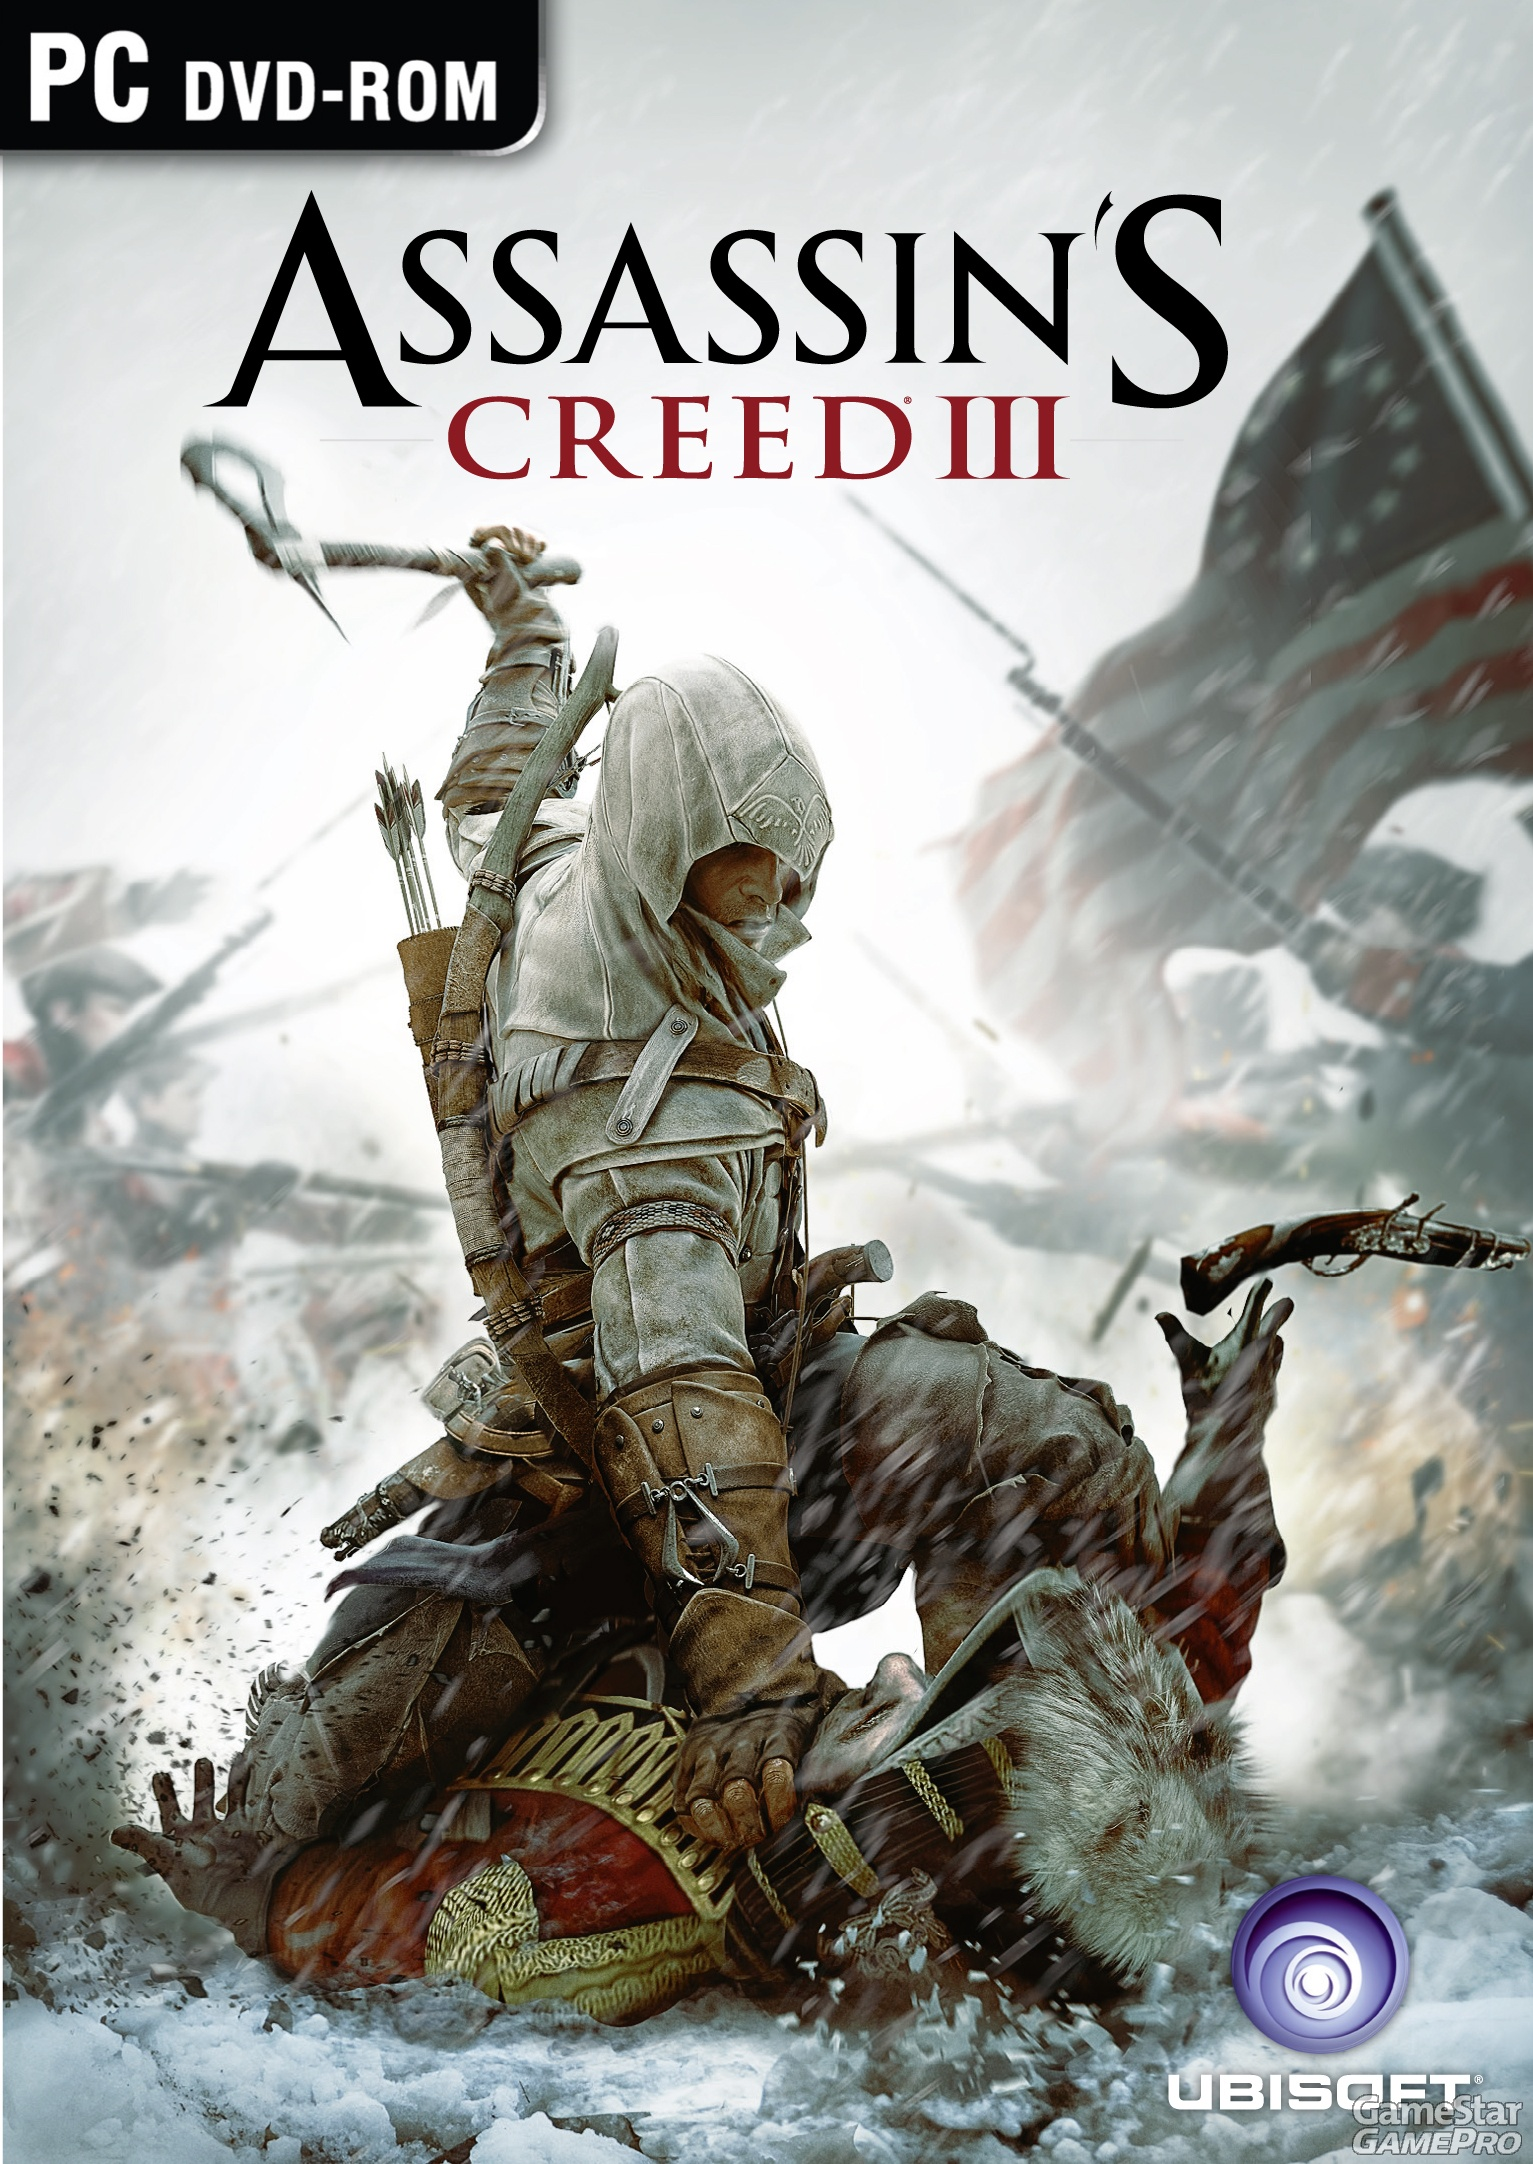 aevis games more probably game thats killing much arkham city with answer found within thing pretty seek playing through creed played wrong pitcairn assassins this assassinate